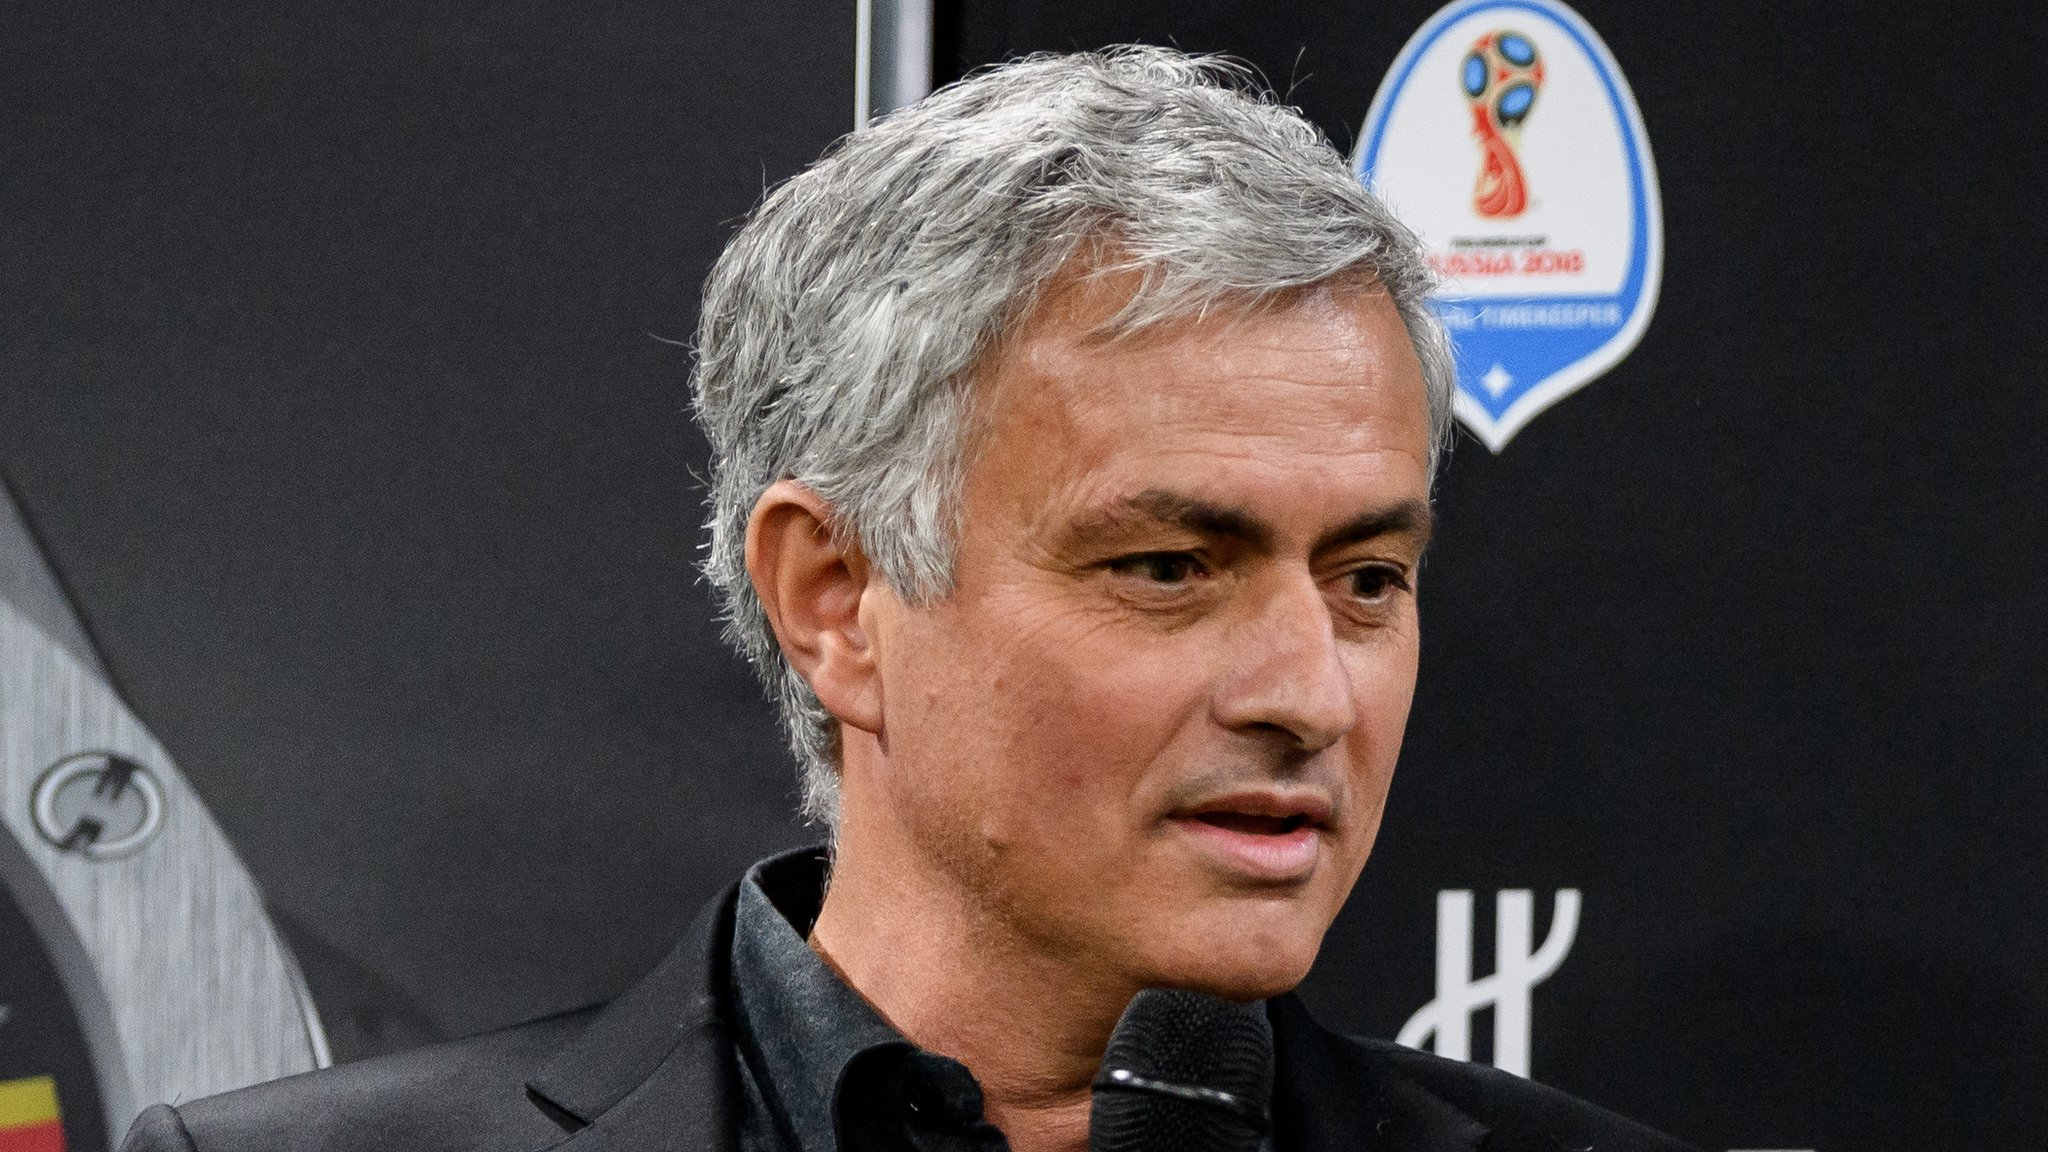 Jose Mourinho: Man Utd boss says 'people with brains' understand team in transition